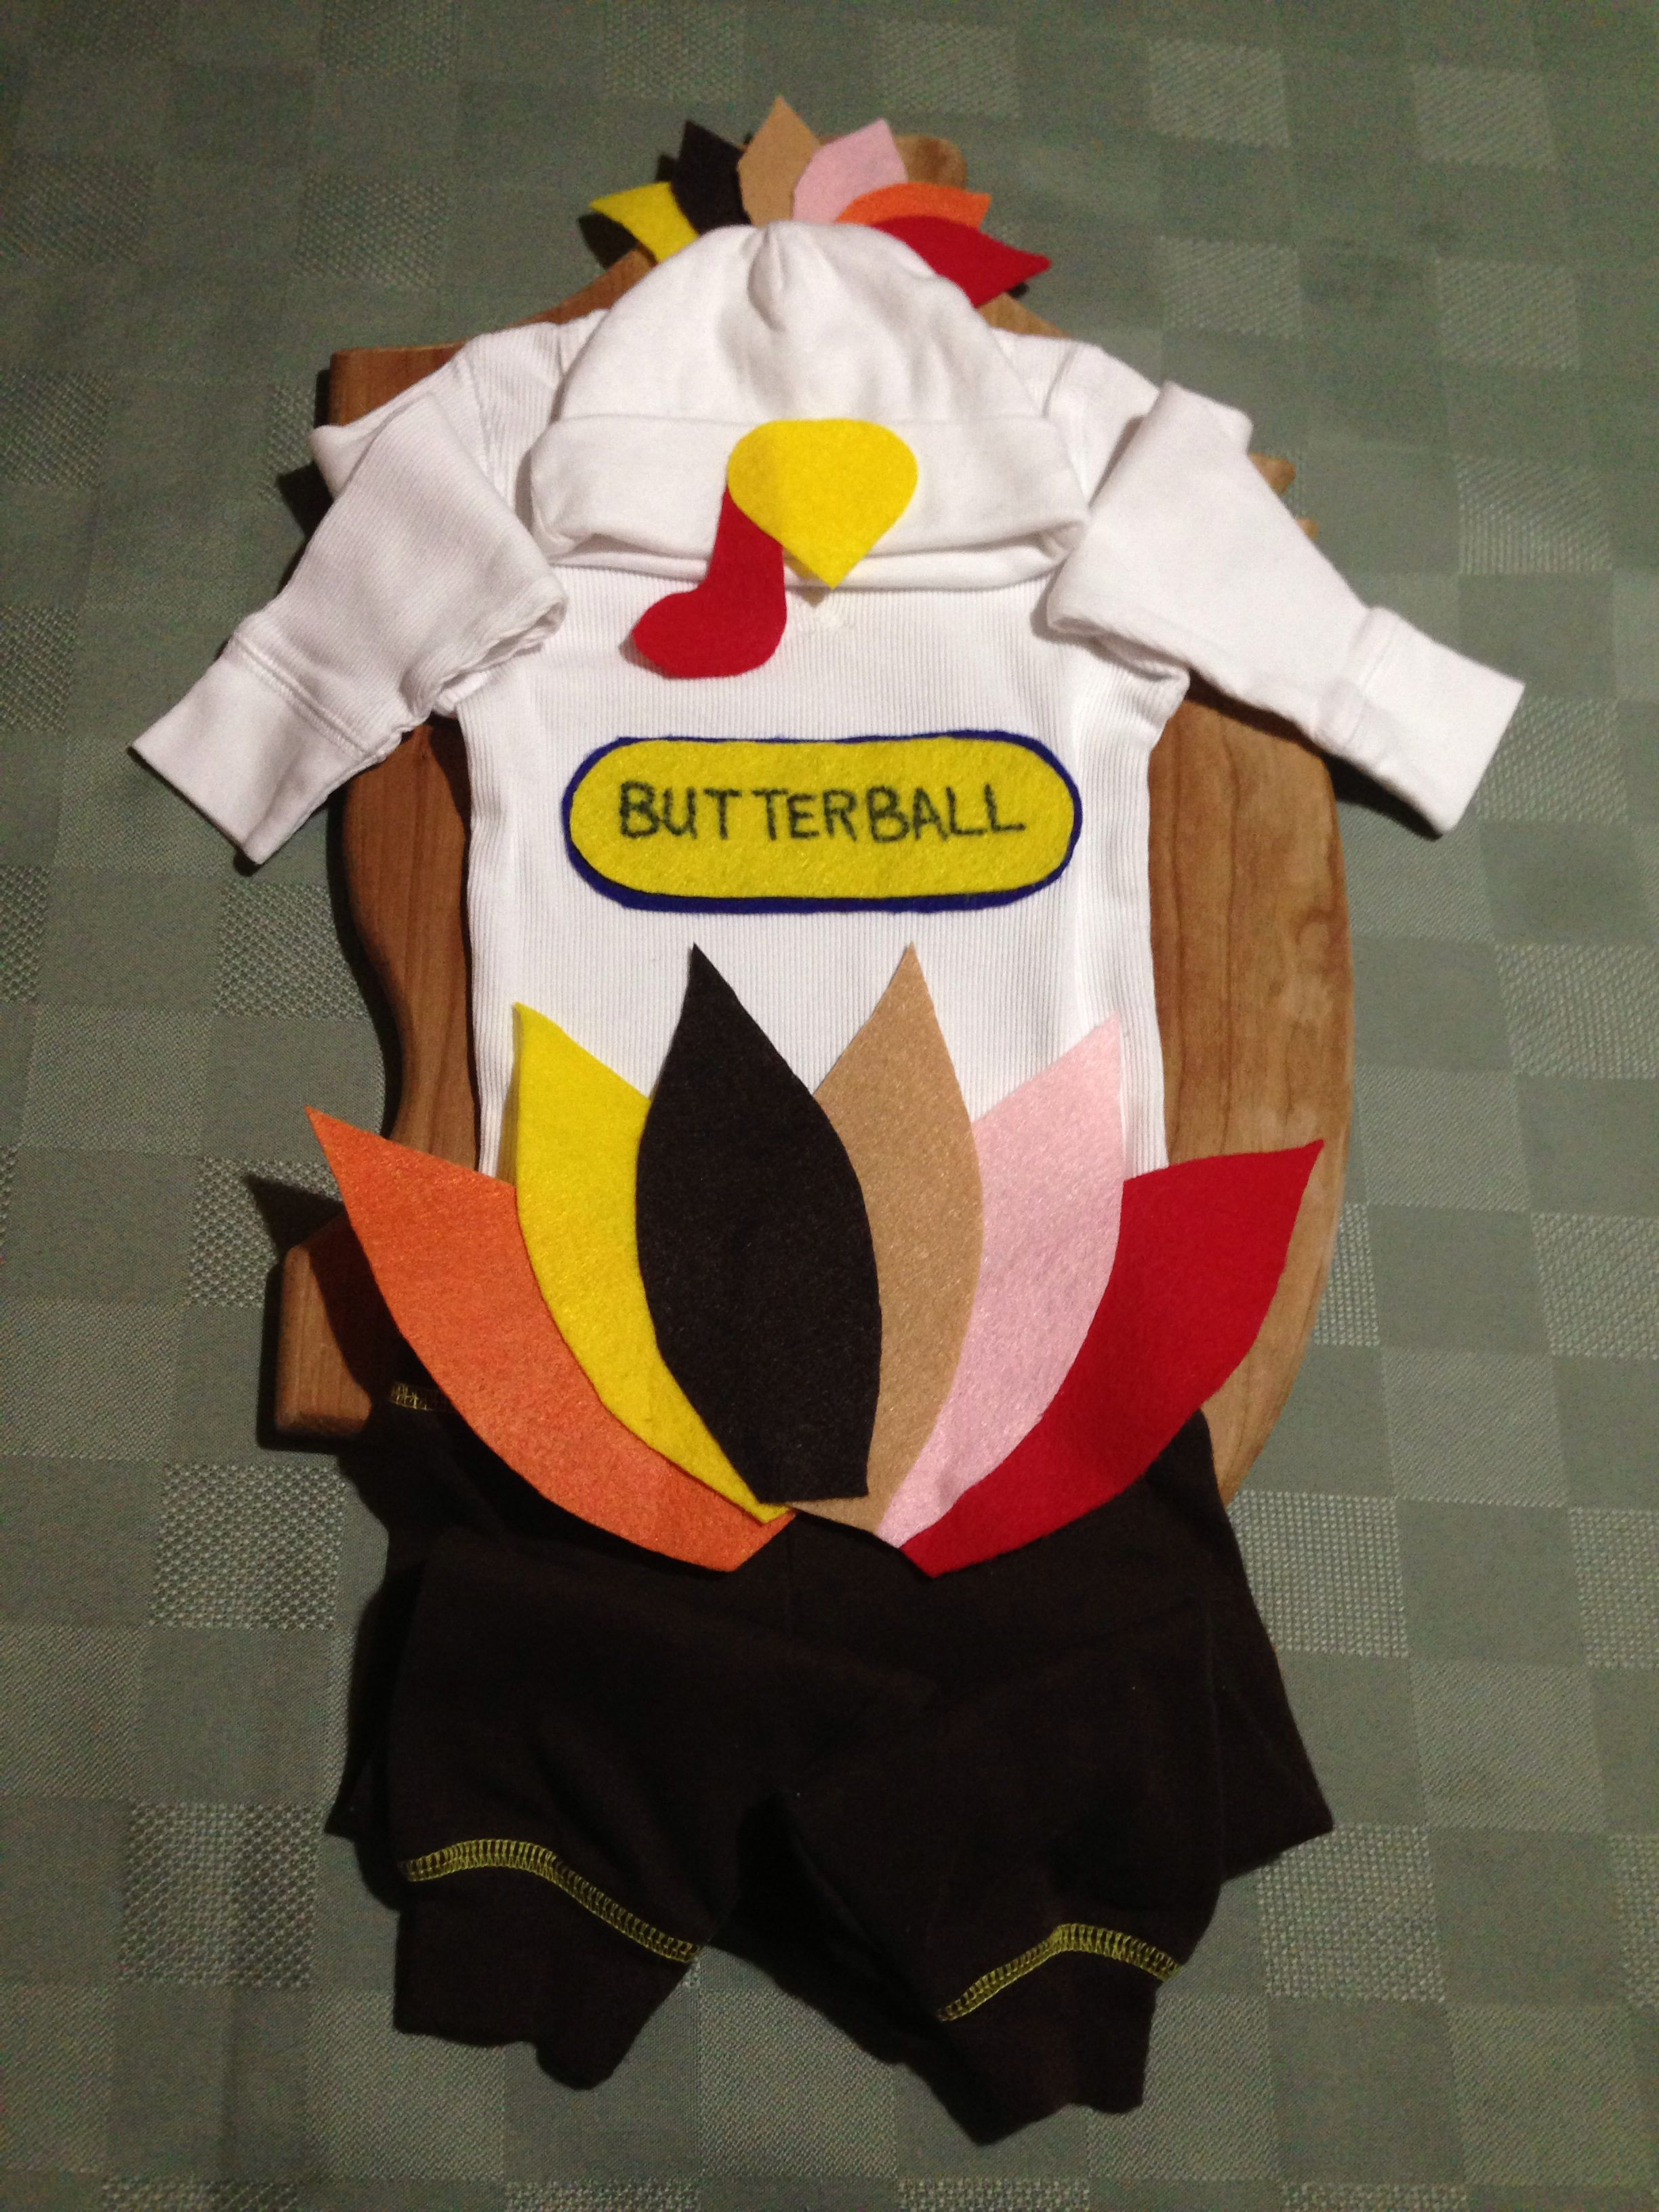 Best ideas about DIY Turkey Costume . Save or Pin DIY Thanksgiving outfit turkey costume for baby How cute Now.